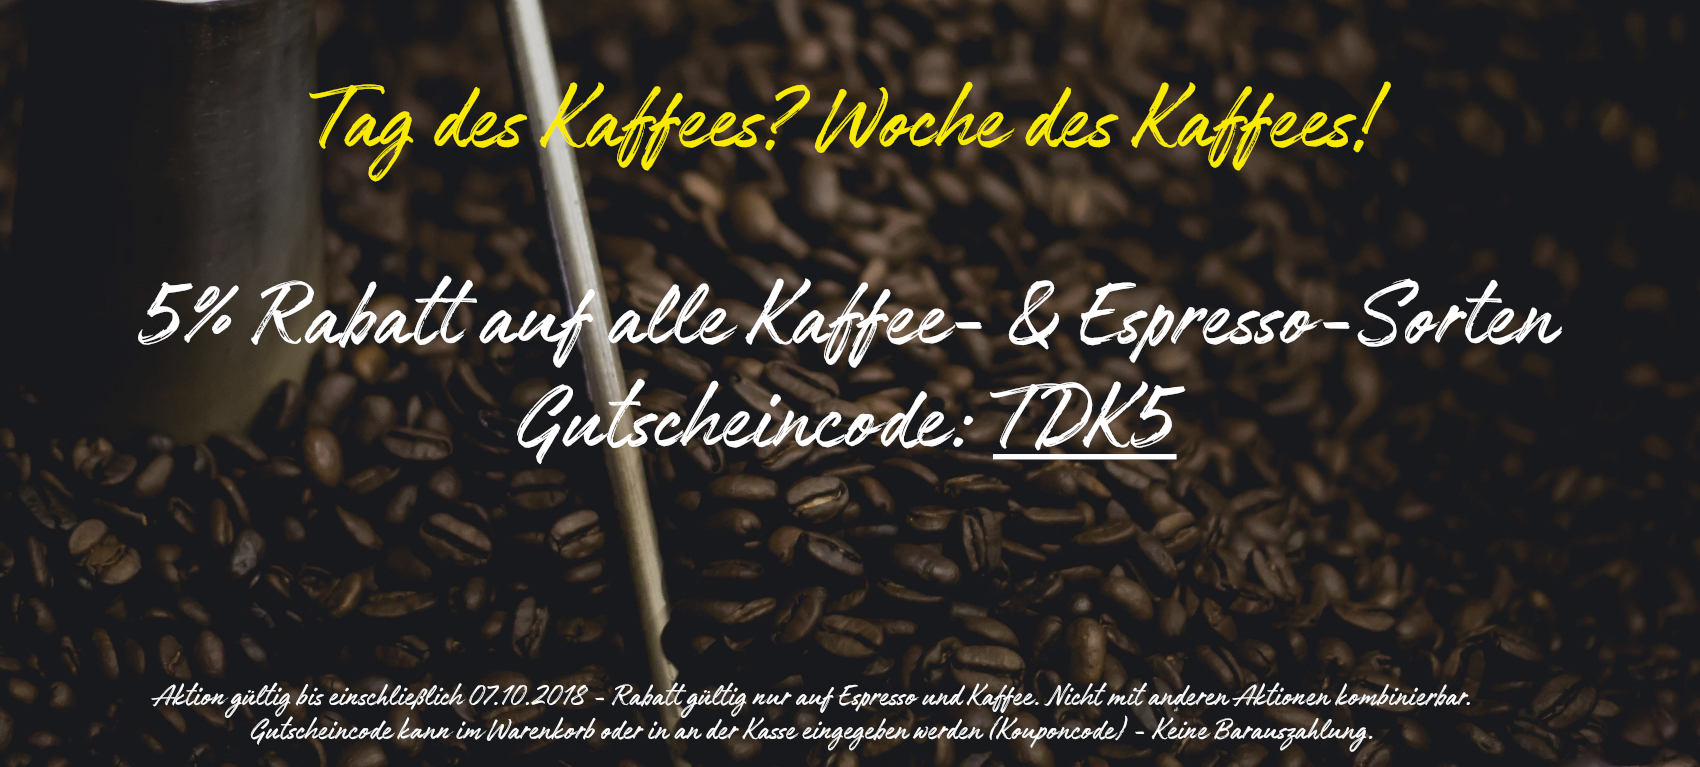 Tag des Kaffees 2018 bei SlowCoffee.de